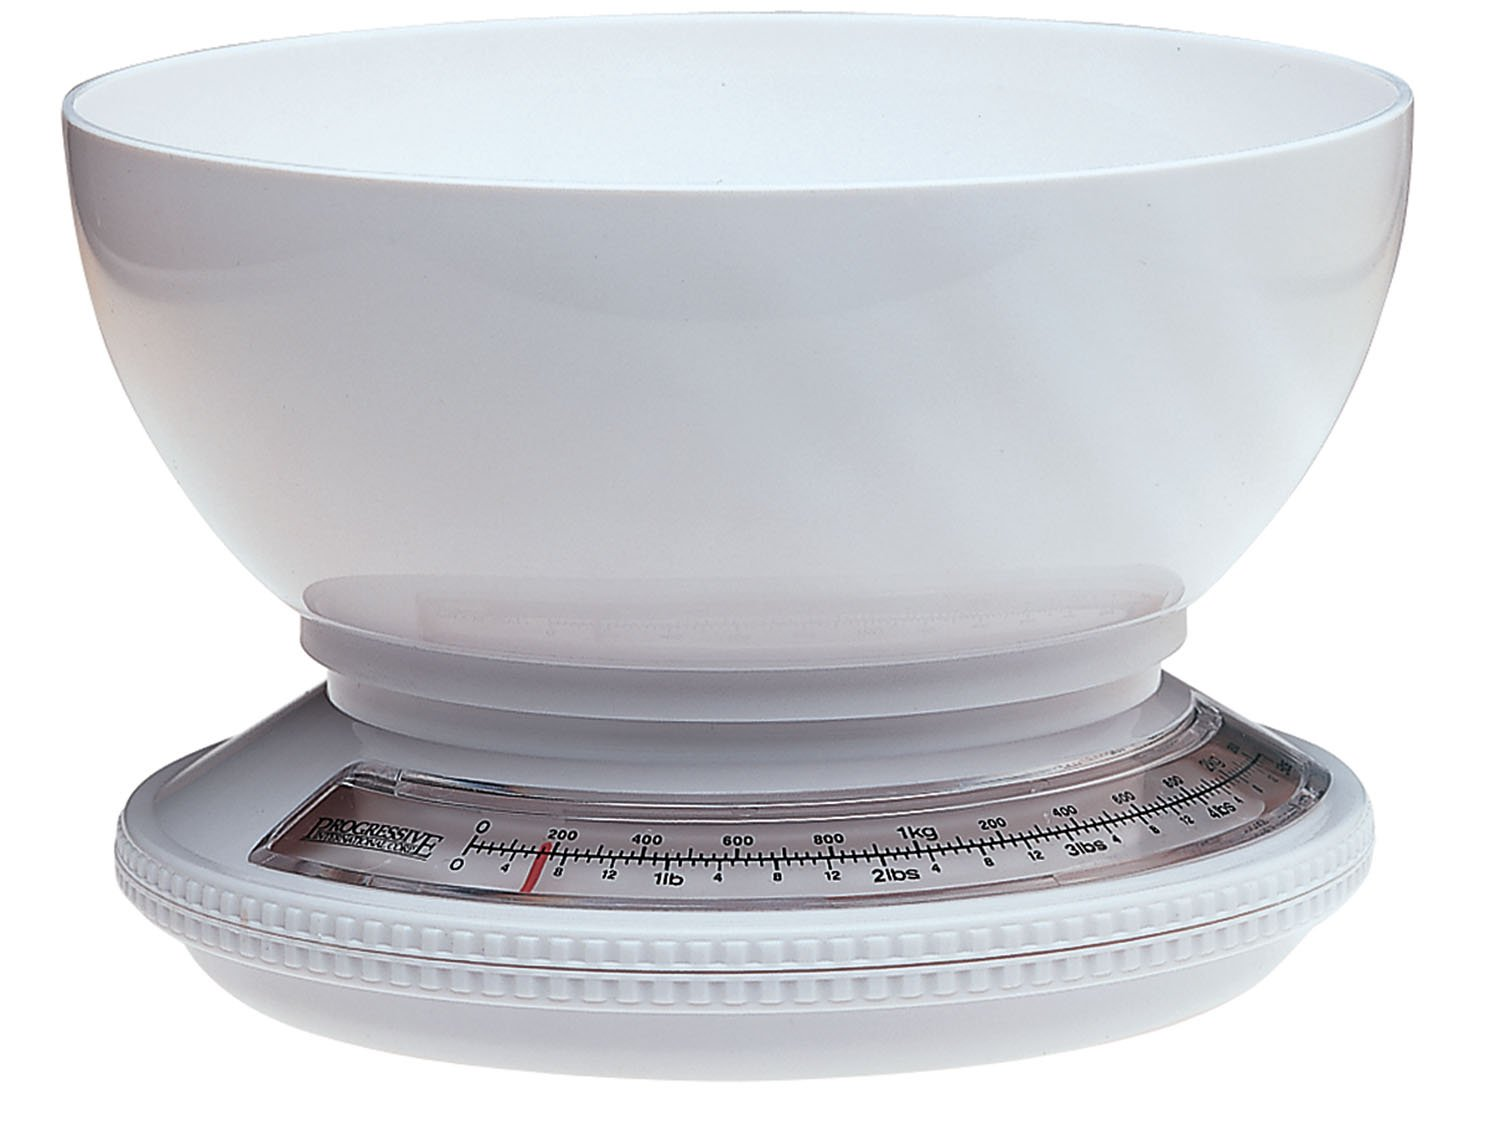 Prepworks by Progressive Kitchen Scale with Removable Bowl -5 Pound Capacity